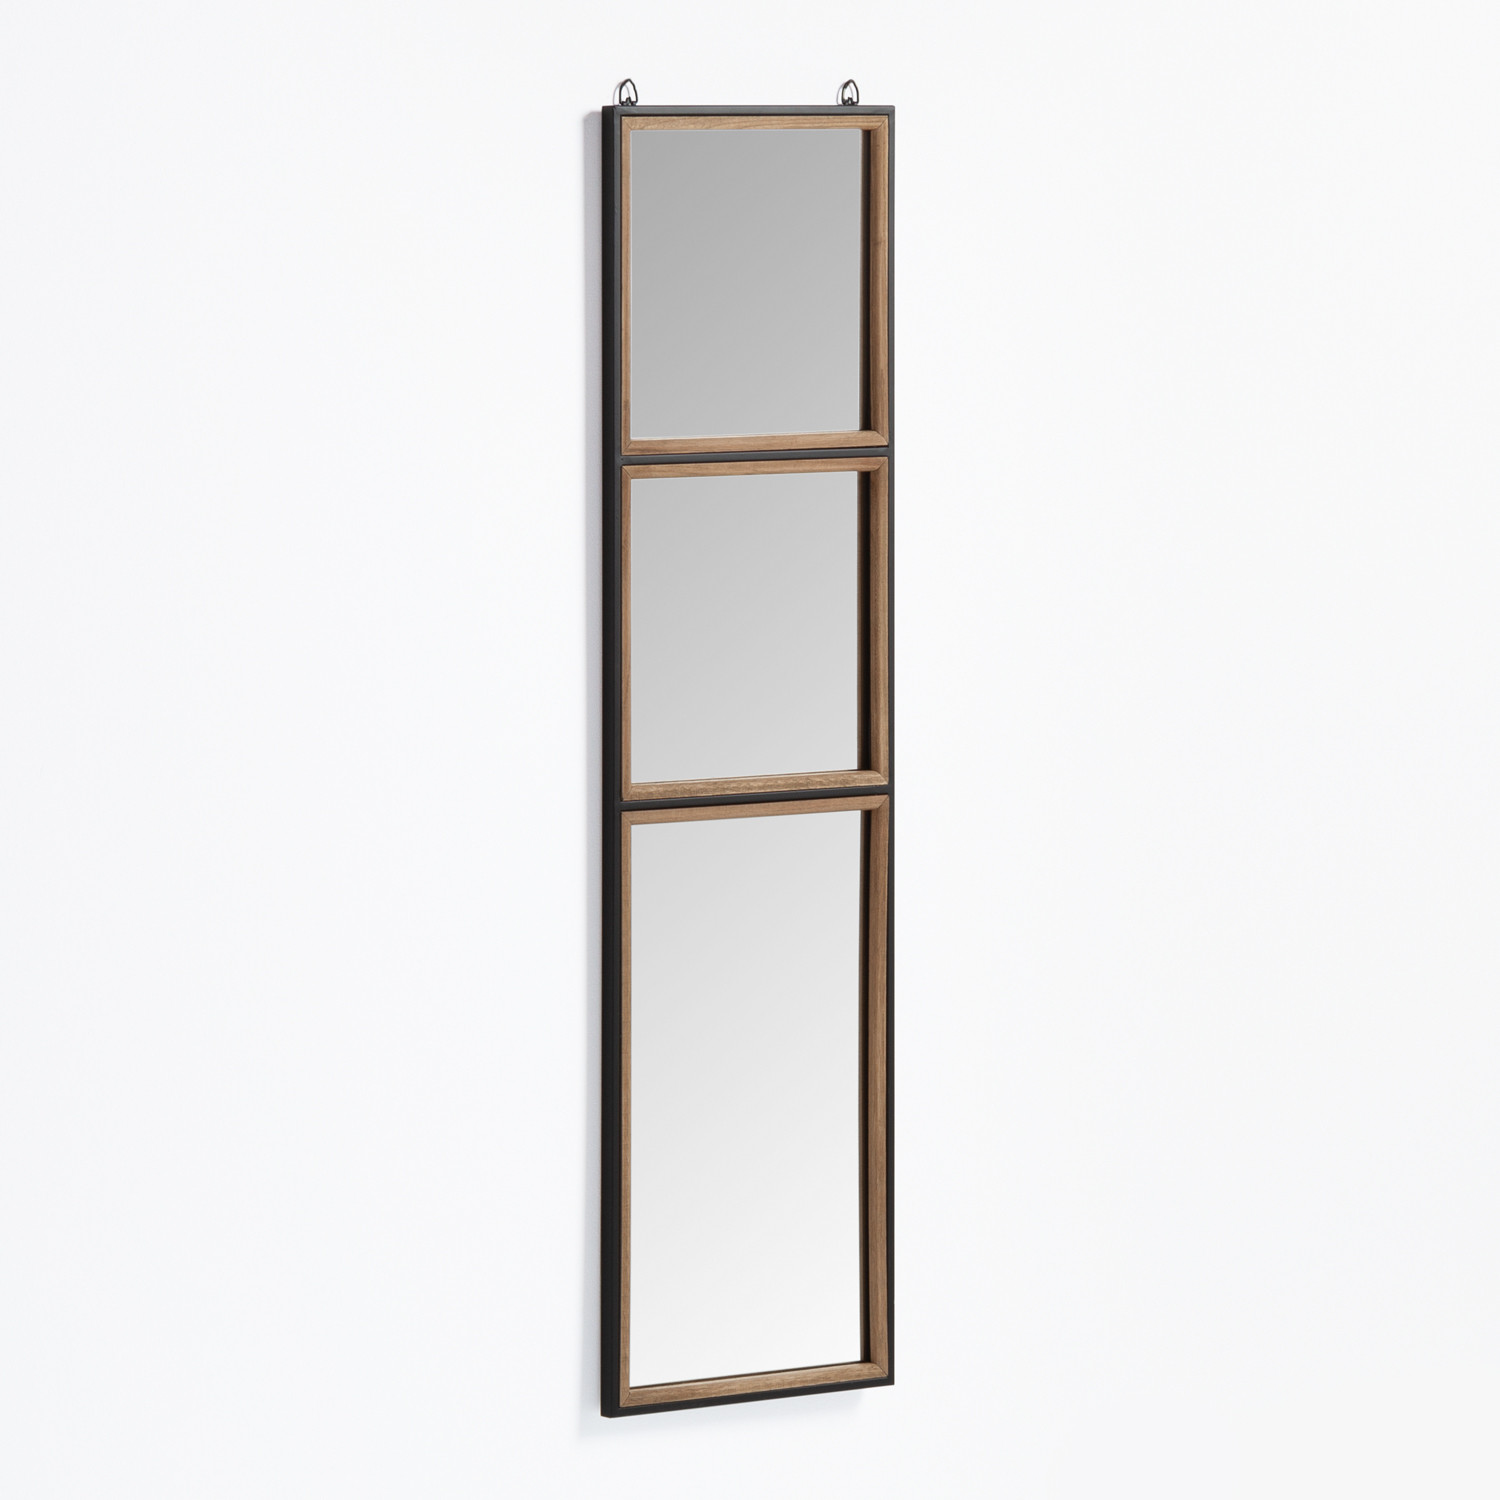 Wall Mirror in Wood and Metal (130.5x35 cm) Iogus, gallery image 1